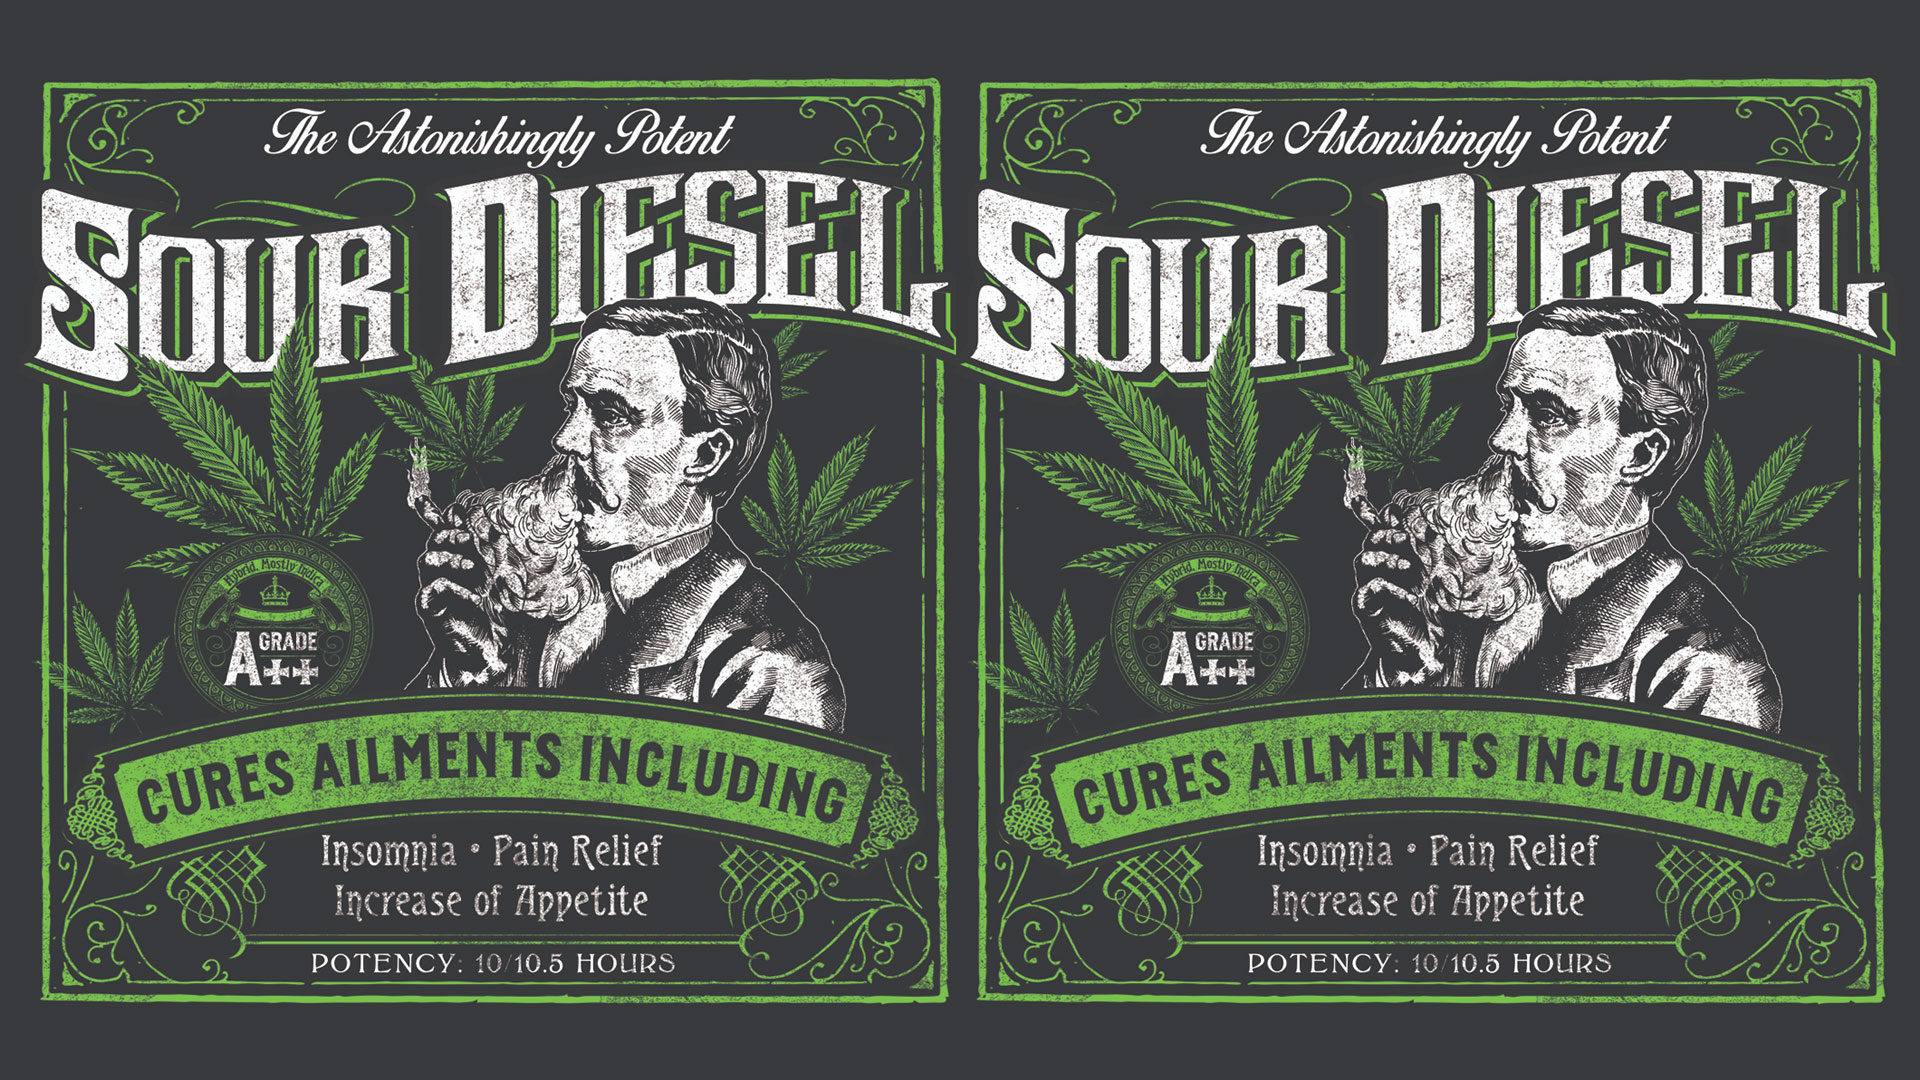 Sour Diesel Promotional Image